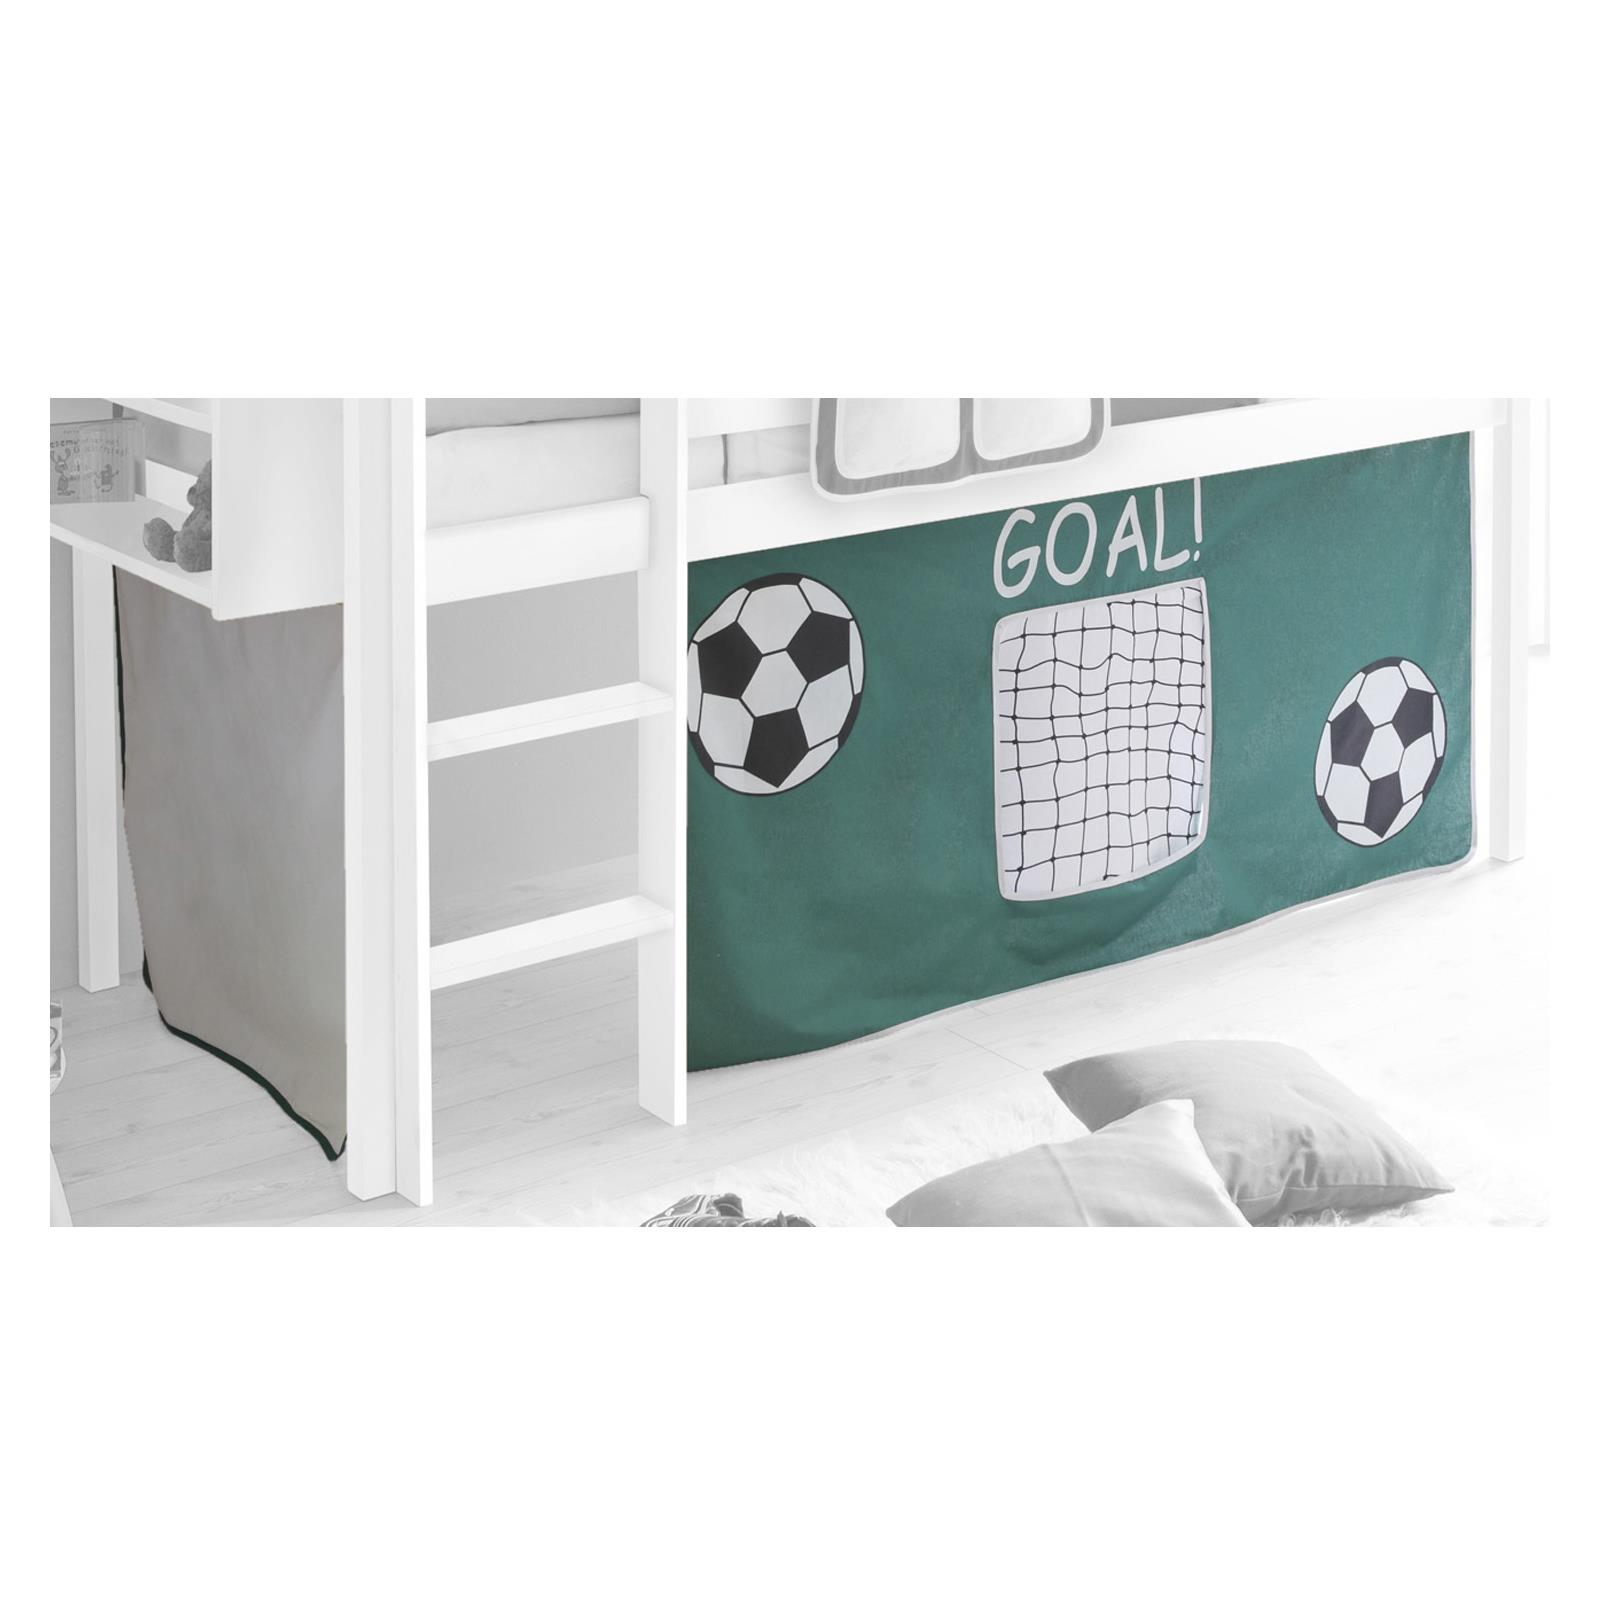 vorhang goal mit fussball motiv mobilia24. Black Bedroom Furniture Sets. Home Design Ideas